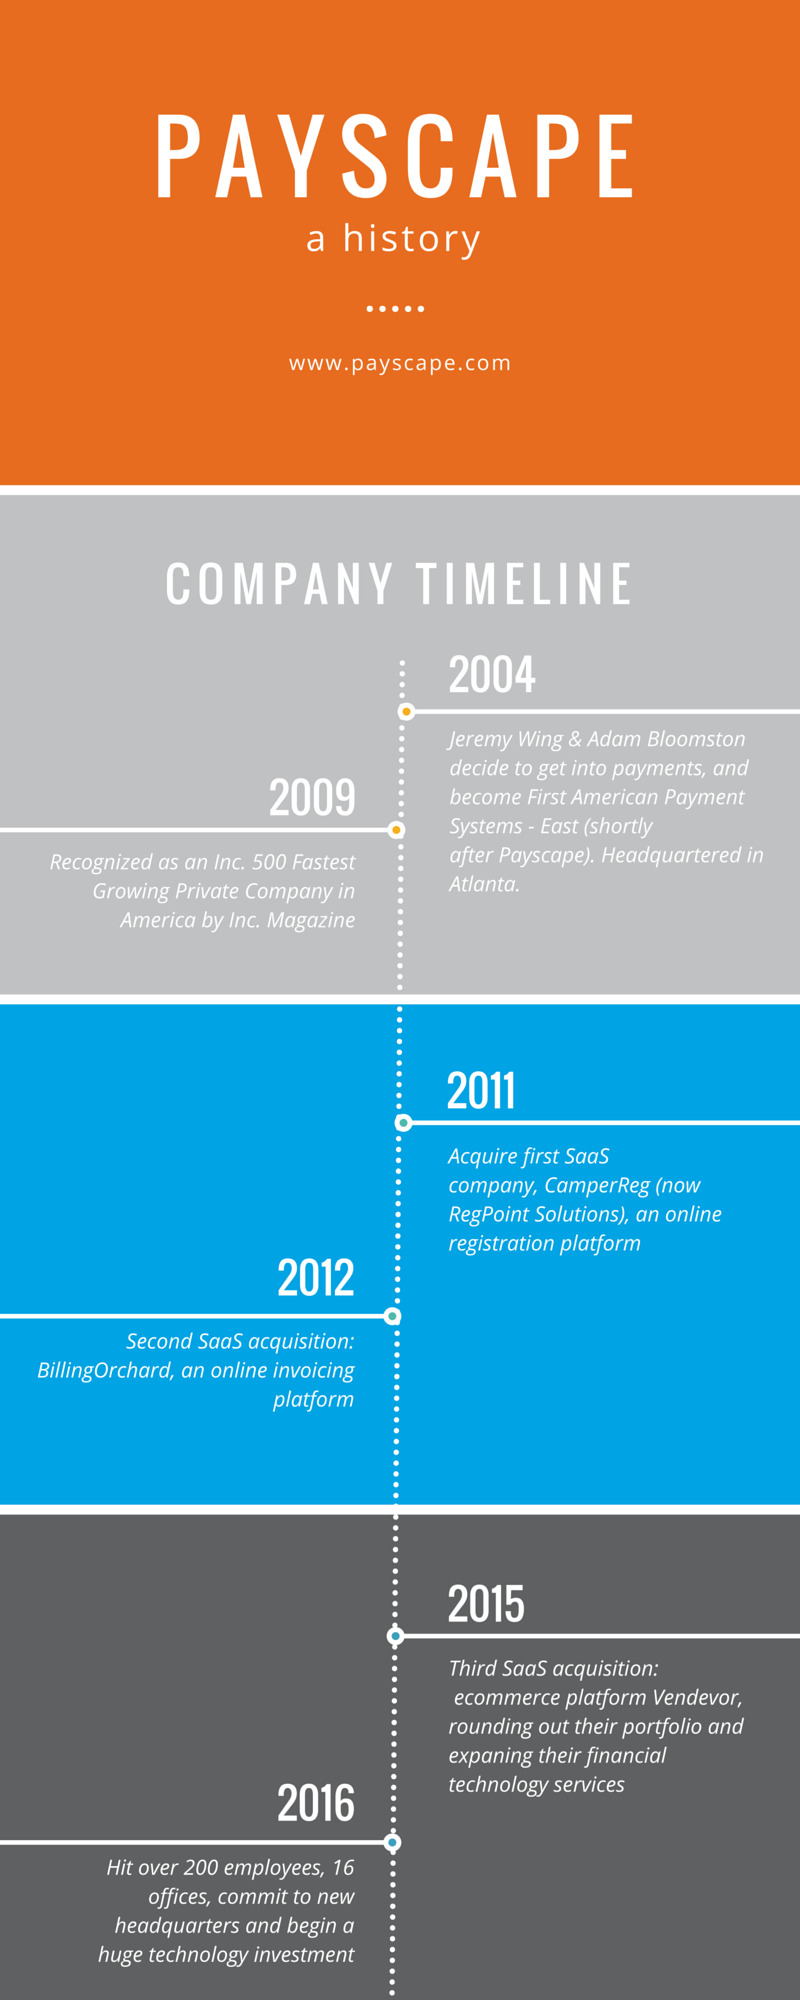 The History of Payscape Infographic